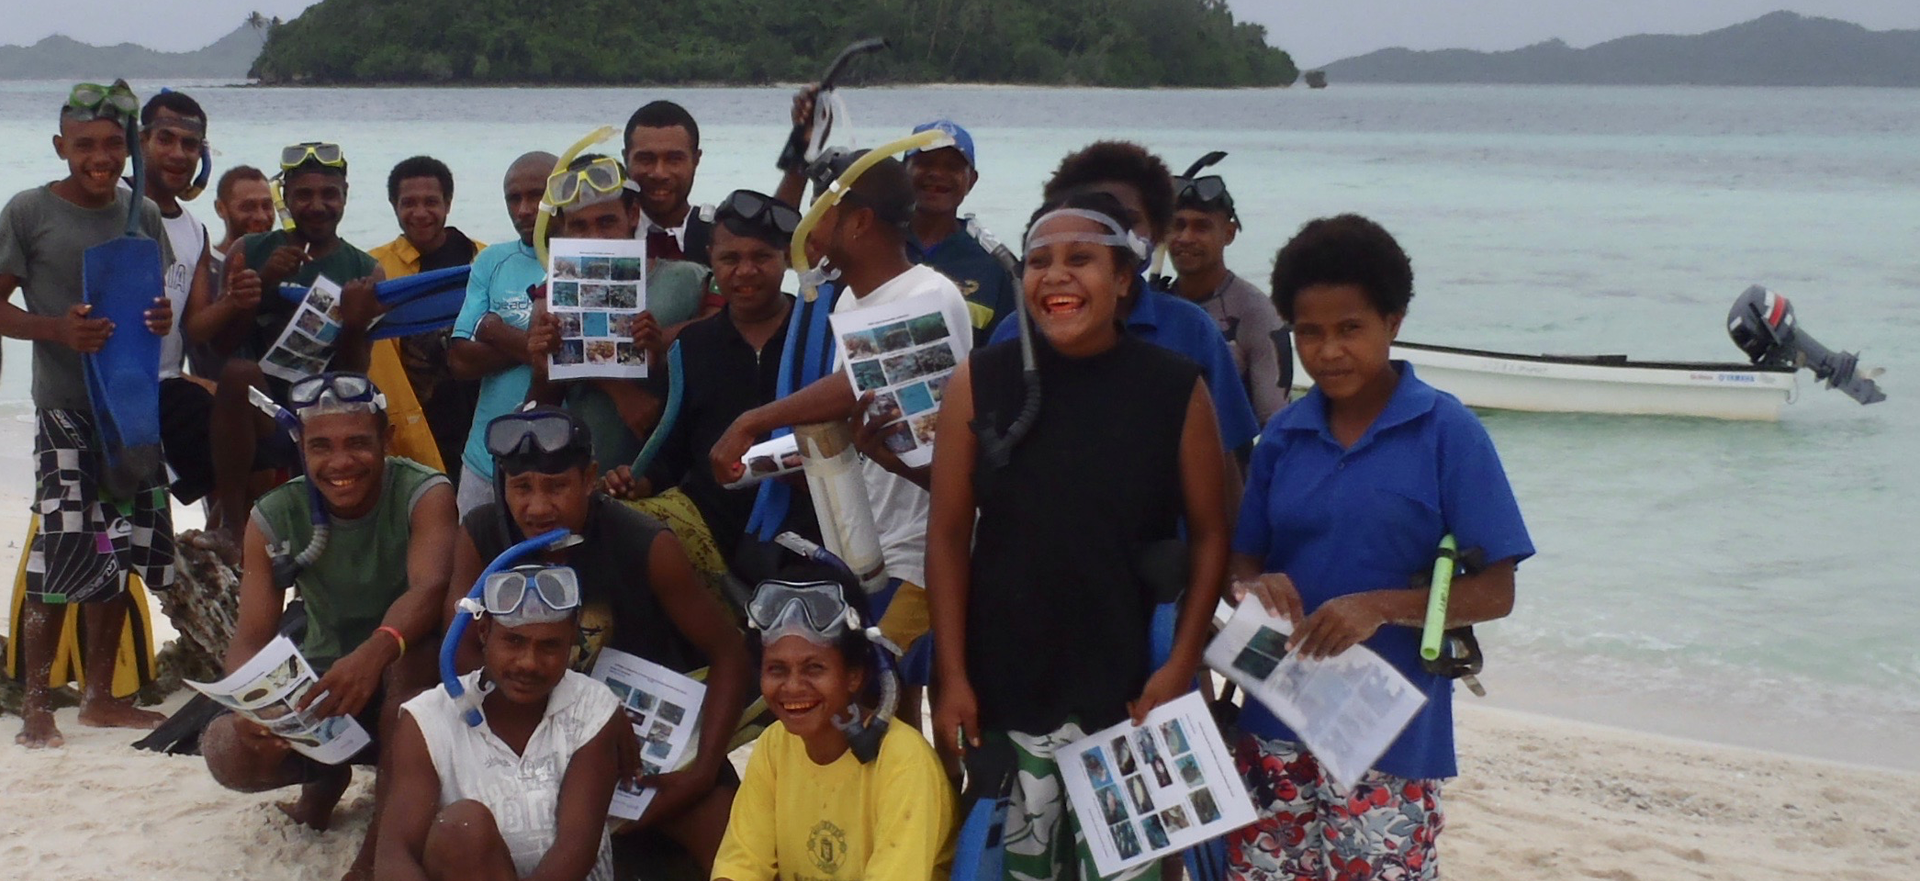 Educate, empower and strengthen the advocacy of local communities to achieve sustainable environmental goals.